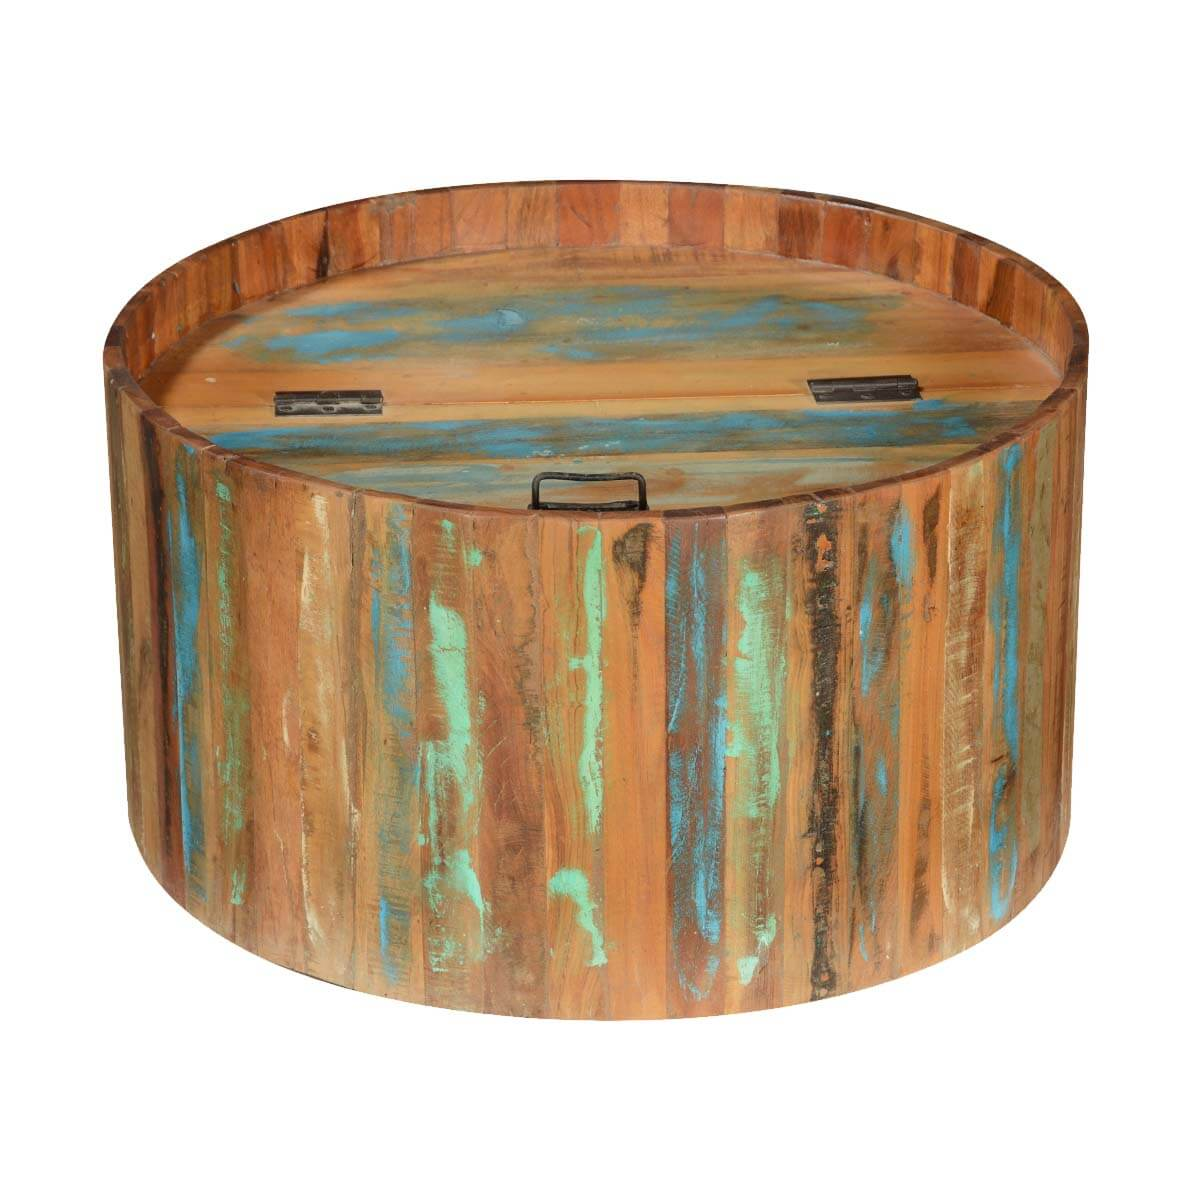 Reclaimed Wood Round Coffee Table With Storage